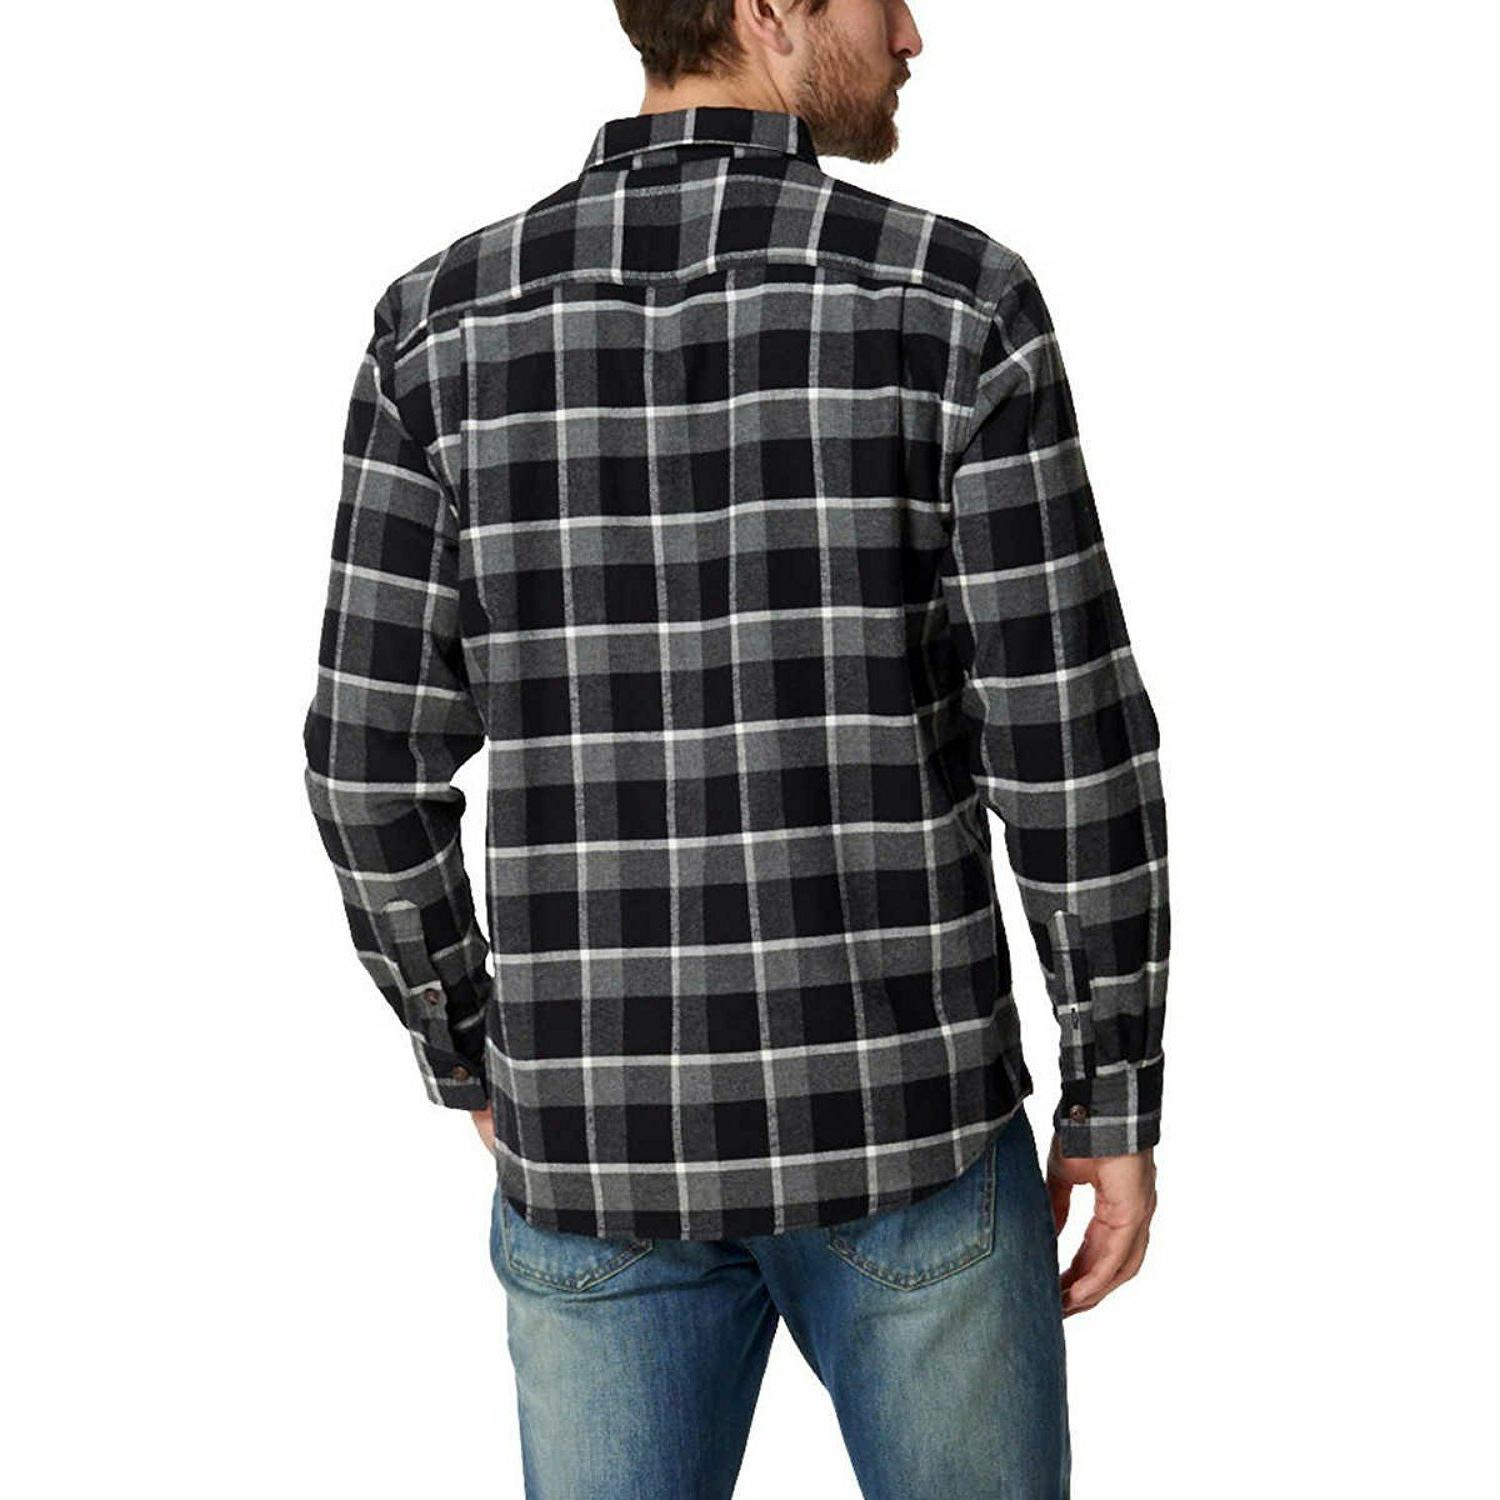 Weatherproof Sleeve Shirts E33